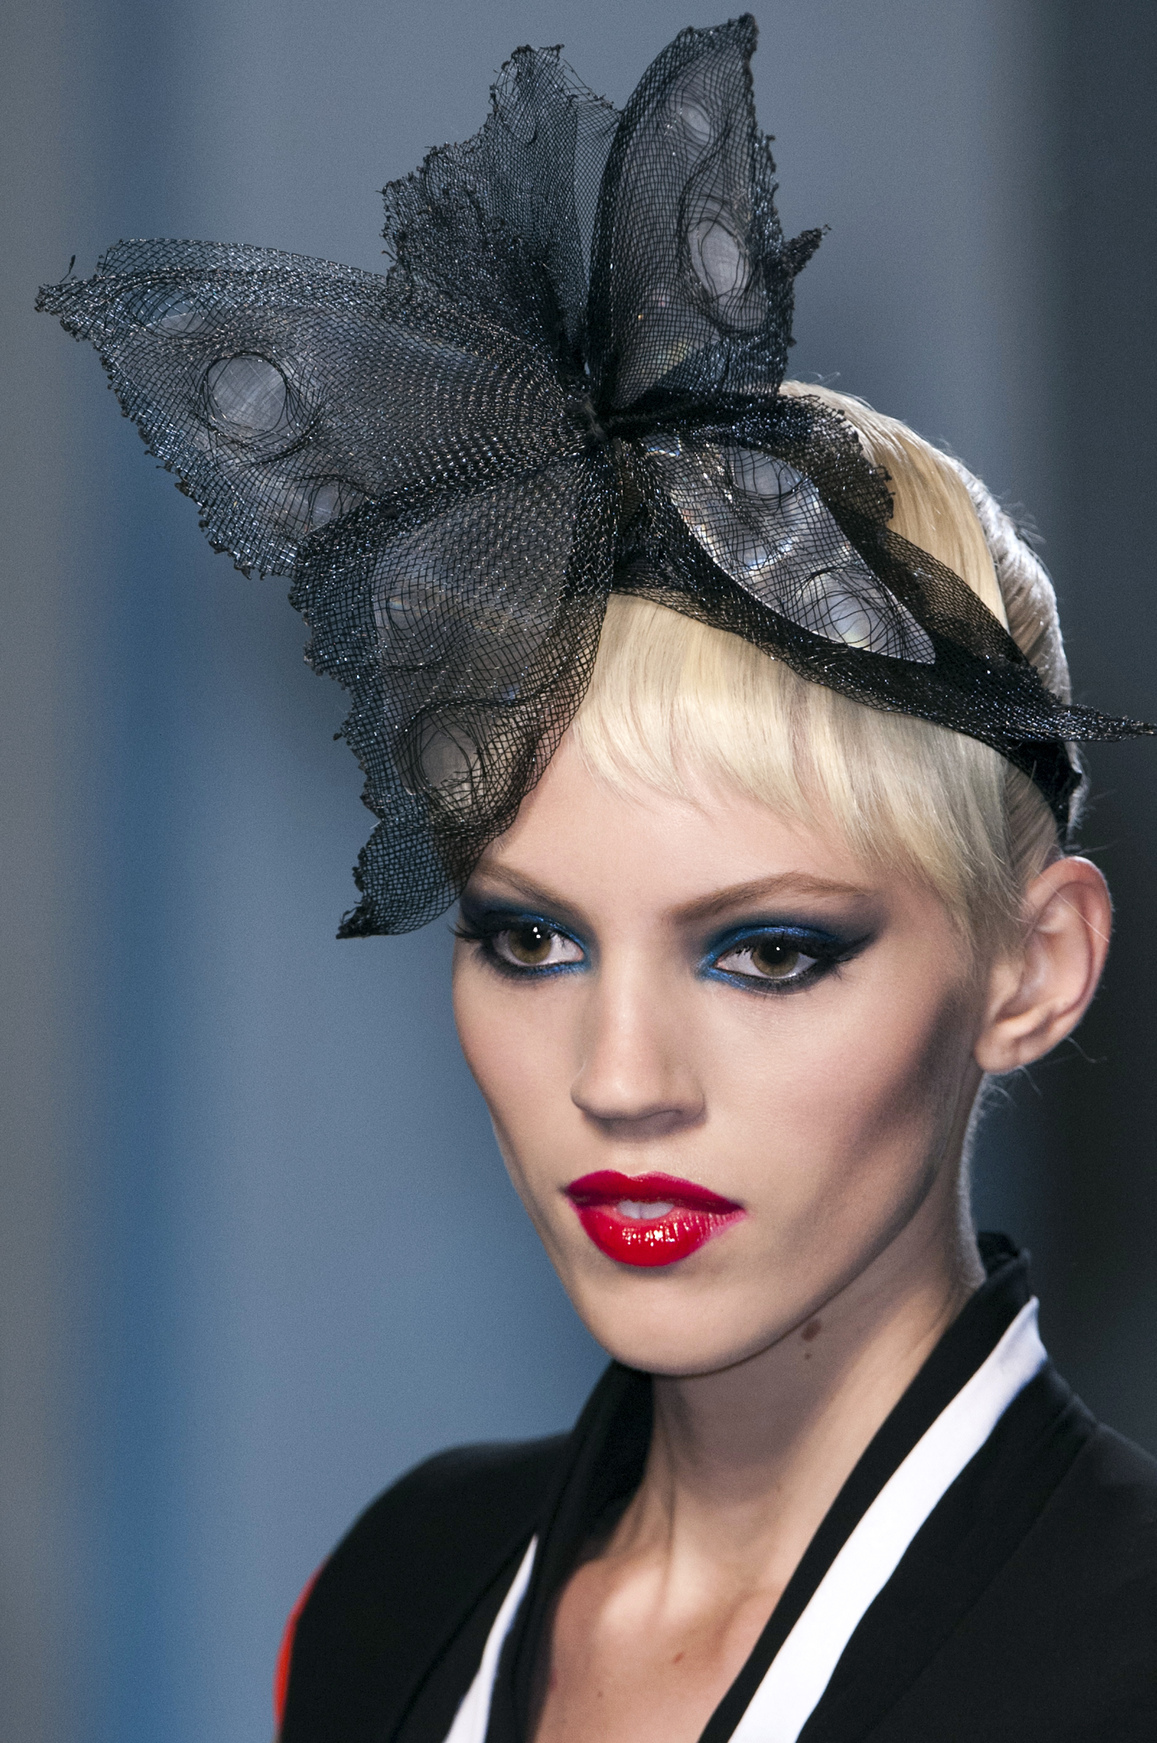 Jean Paul Gaultier hair accessory